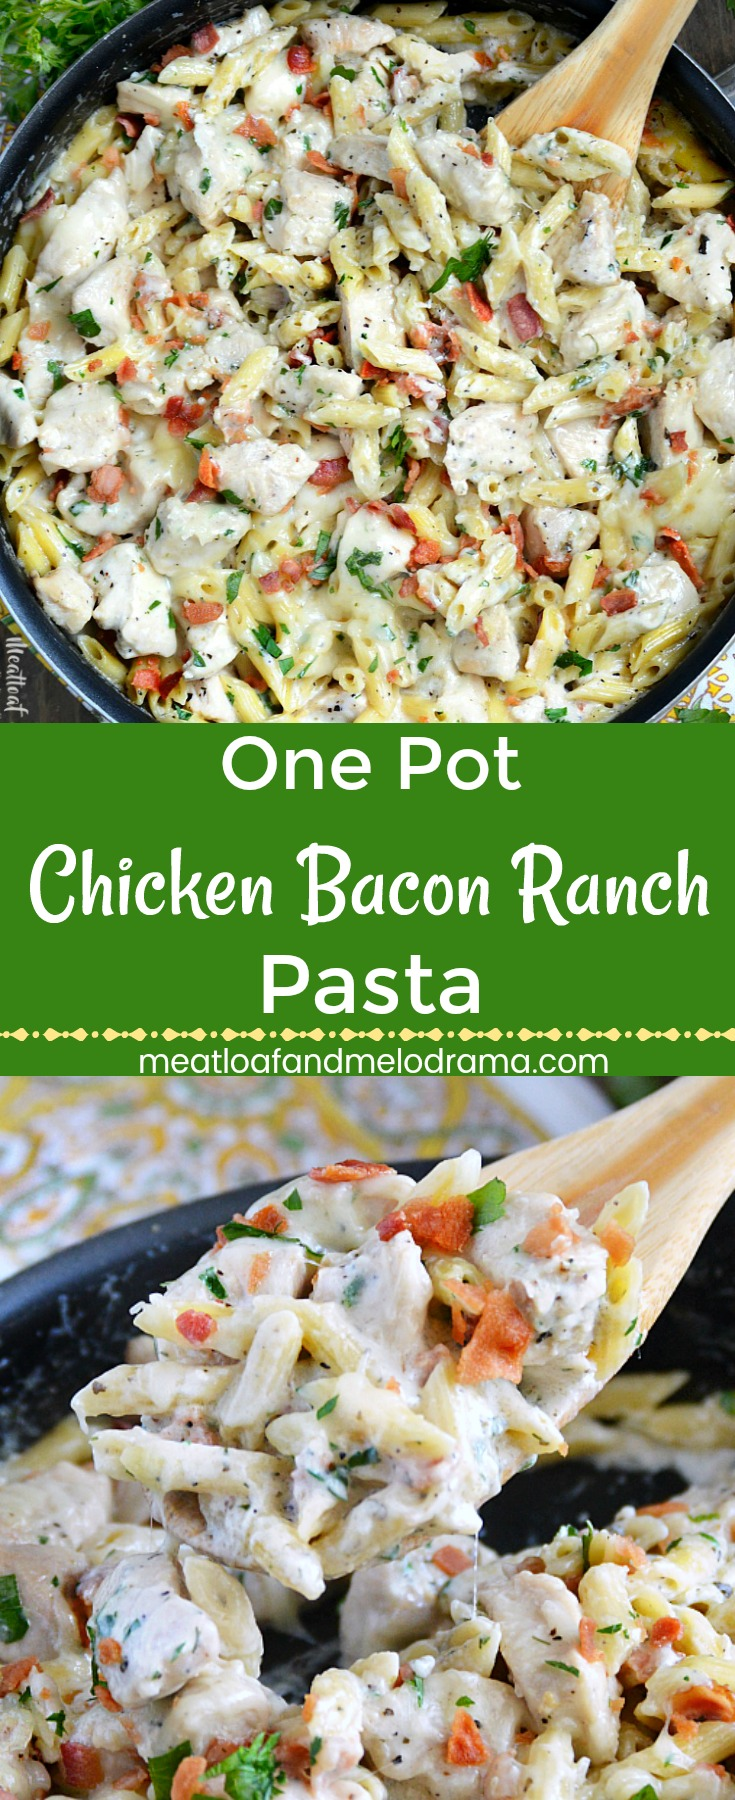 One Pot Chicken Bacon Ranch Pasta